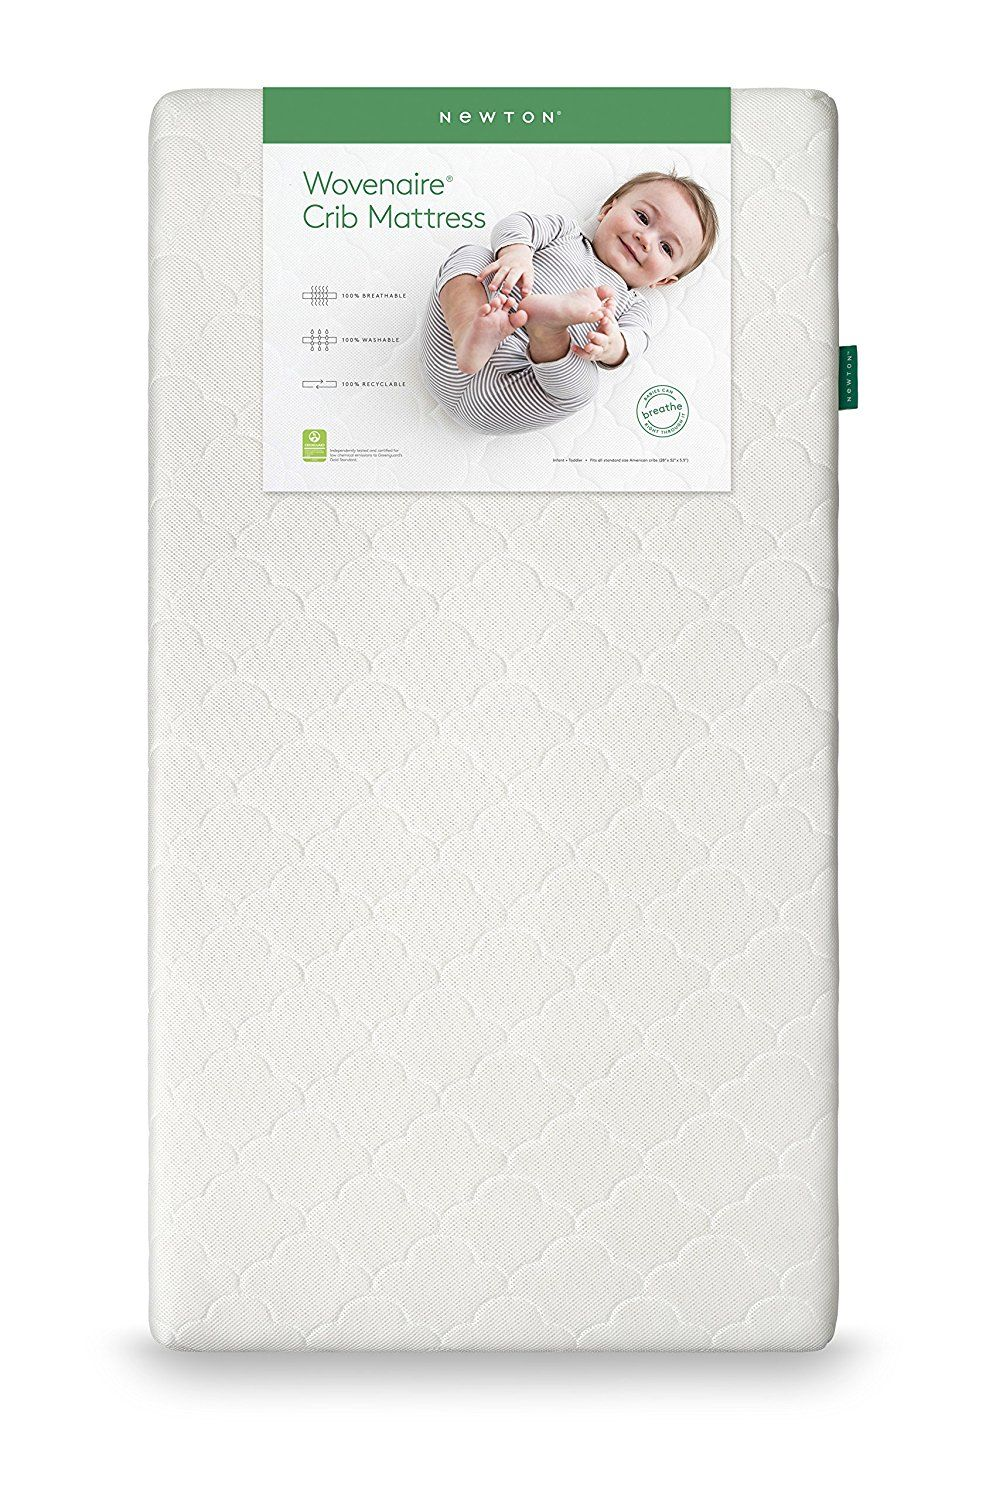 10 Best Crib Mattresses Reviewed In Detail Jun 2020 Best Crib Mattress Baby Mattress Baby Crib Mattress